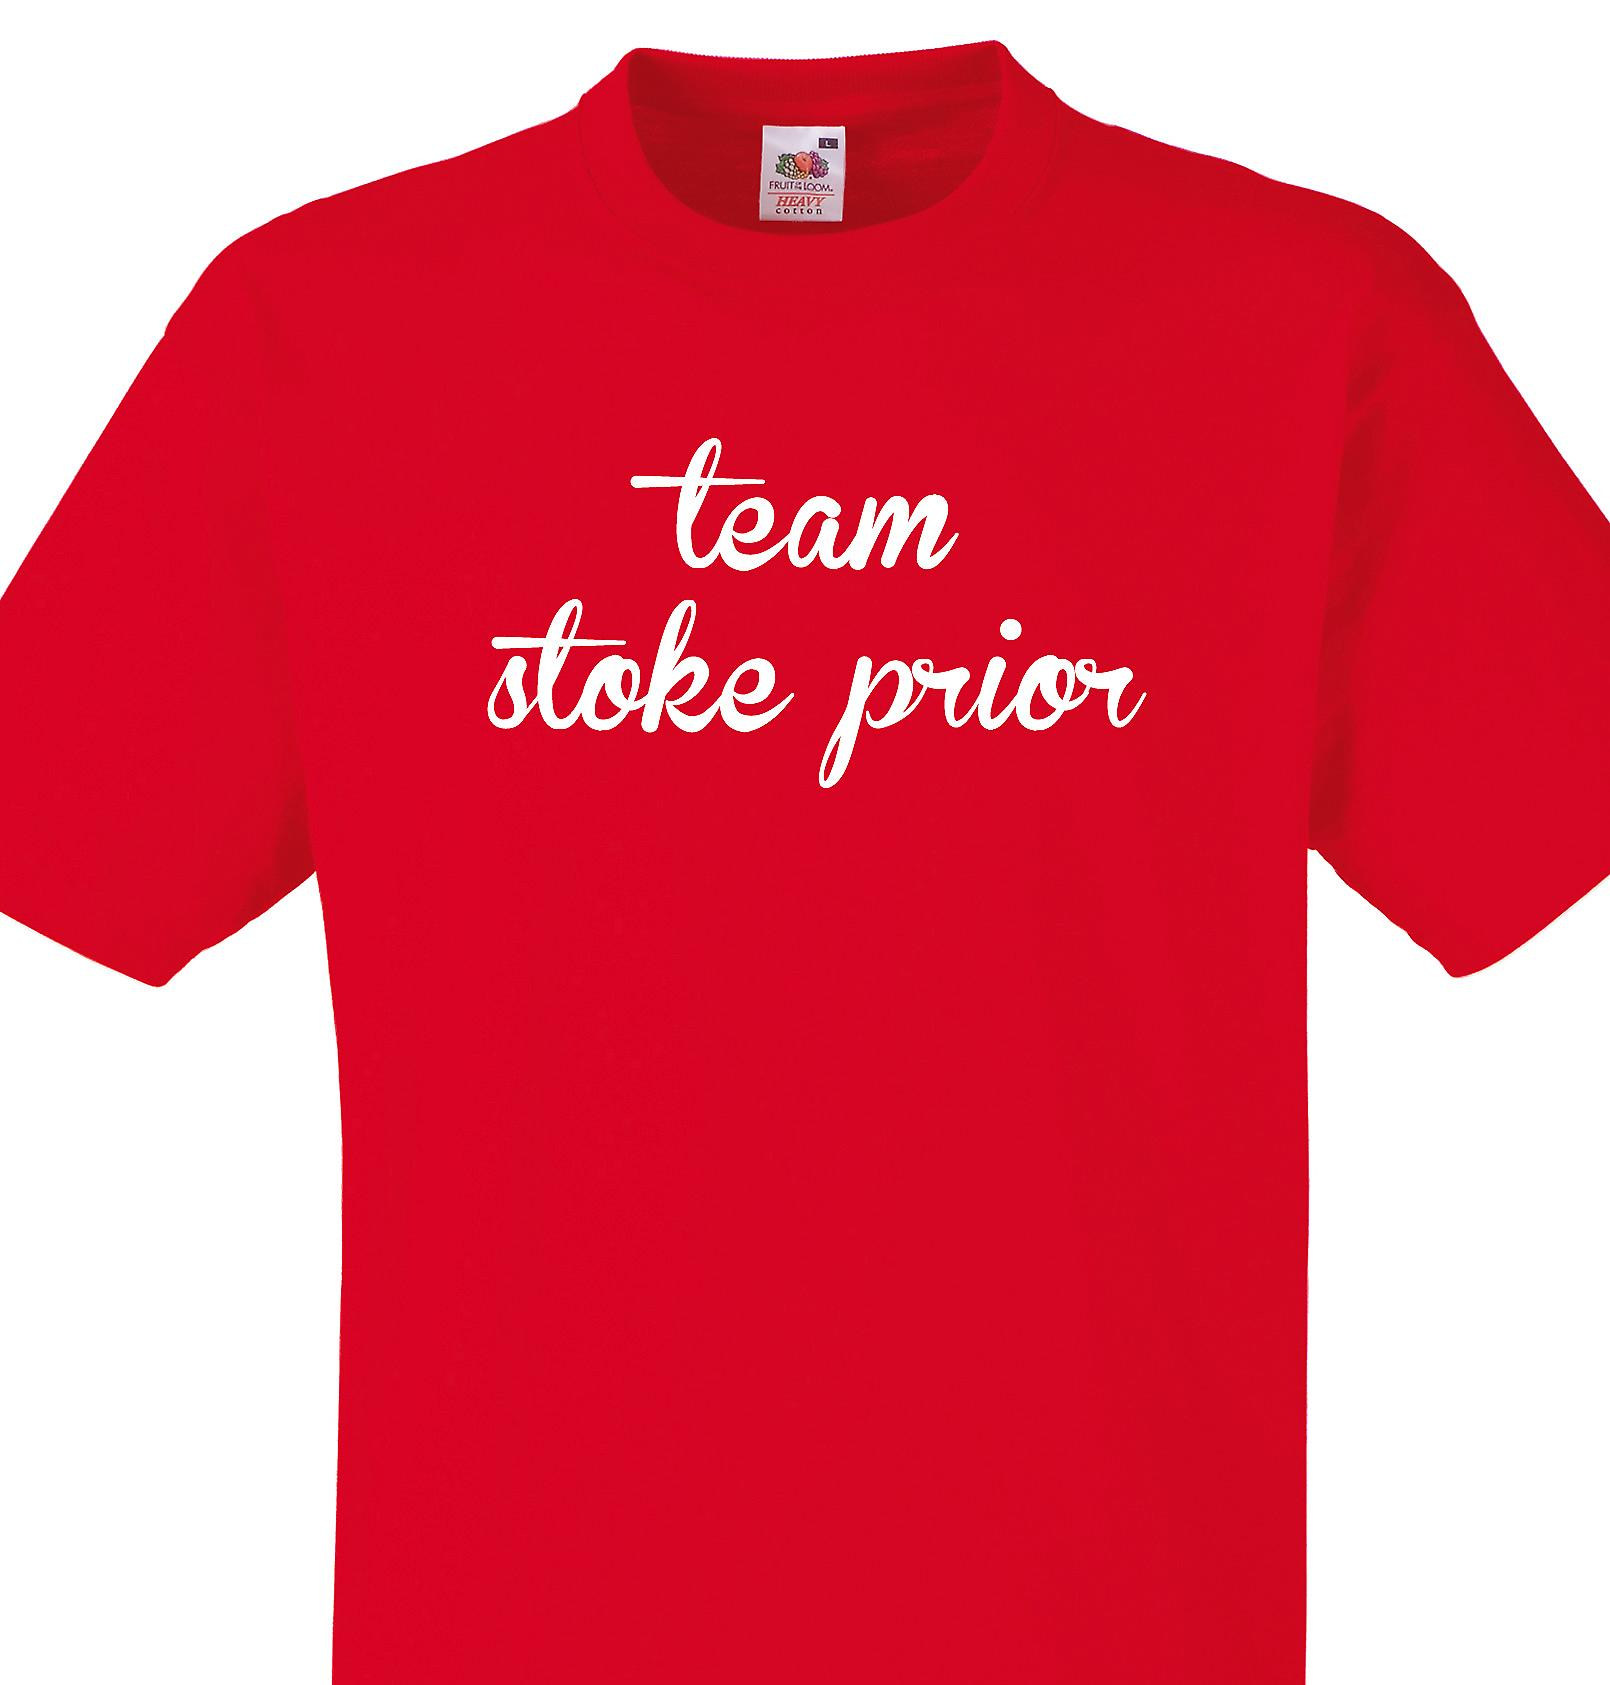 Team Stoke prior Red T shirt